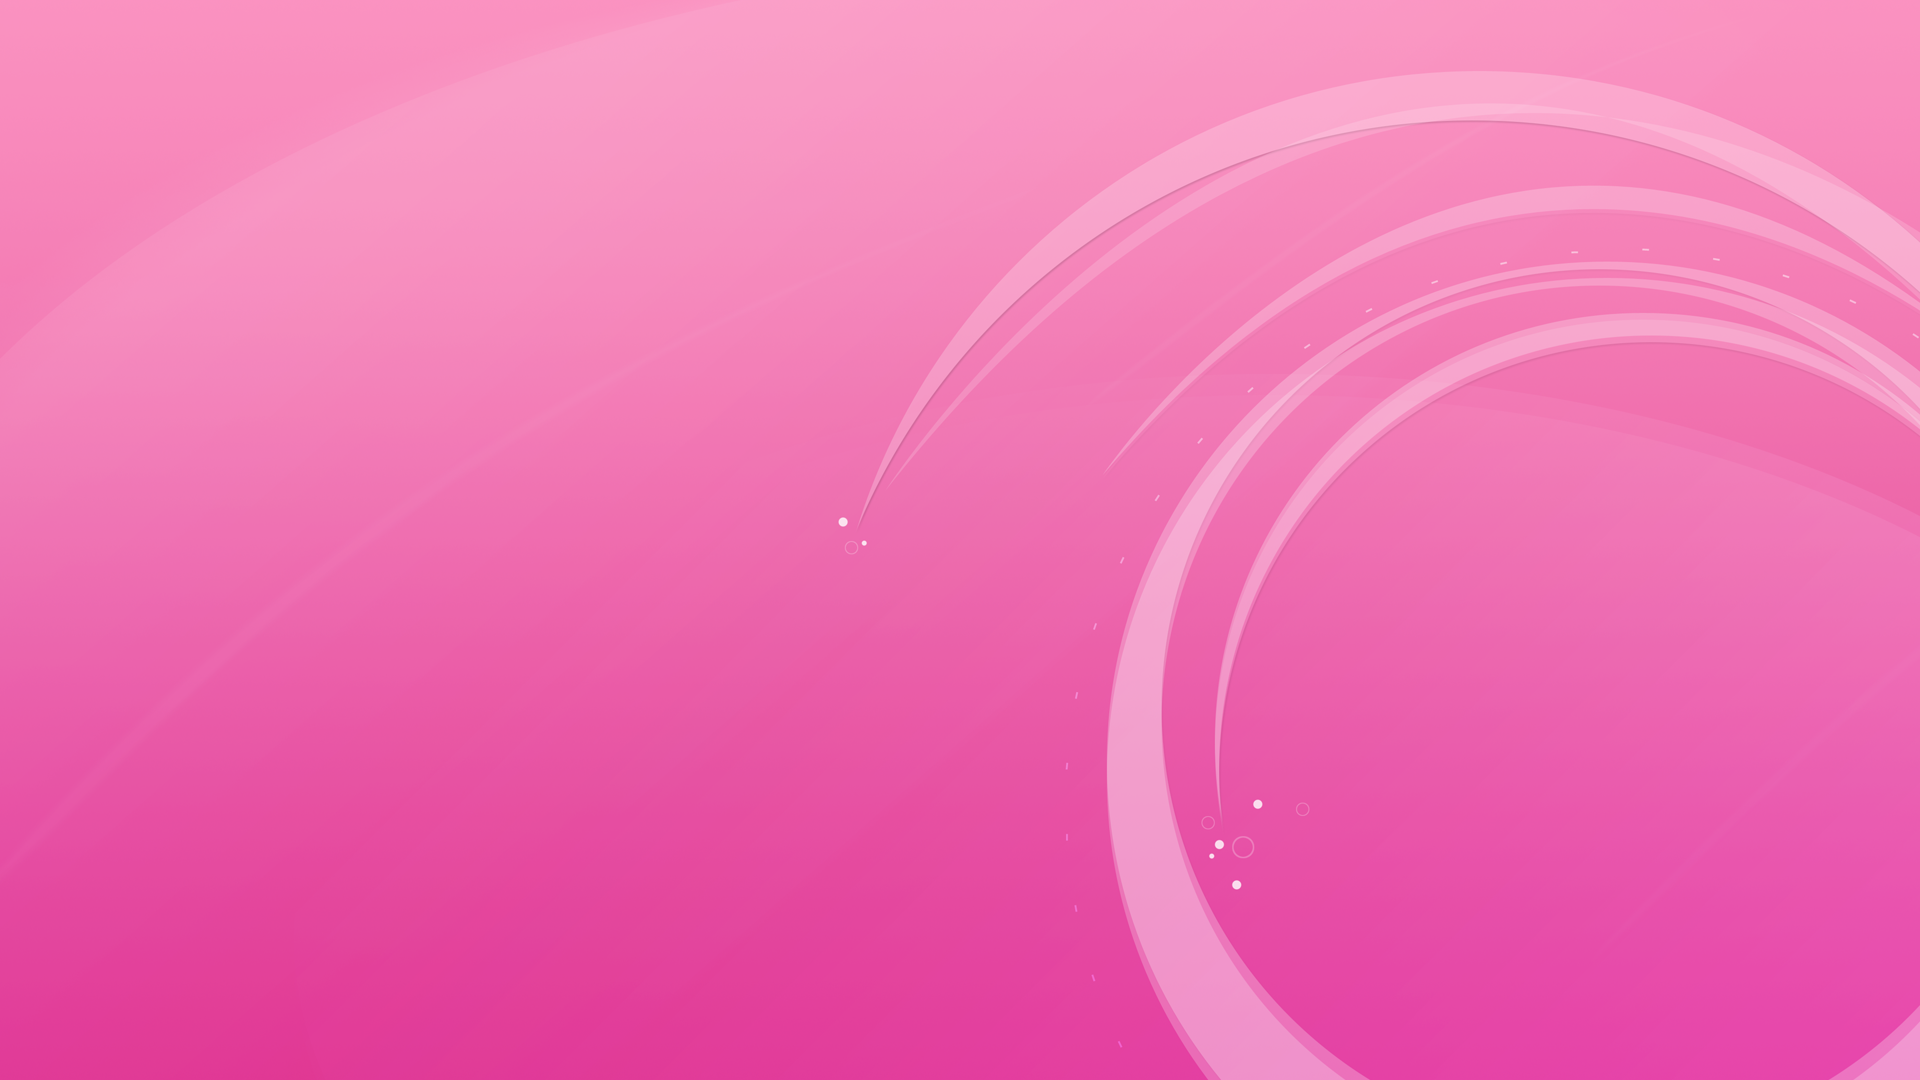 HD Pink Wallpaper